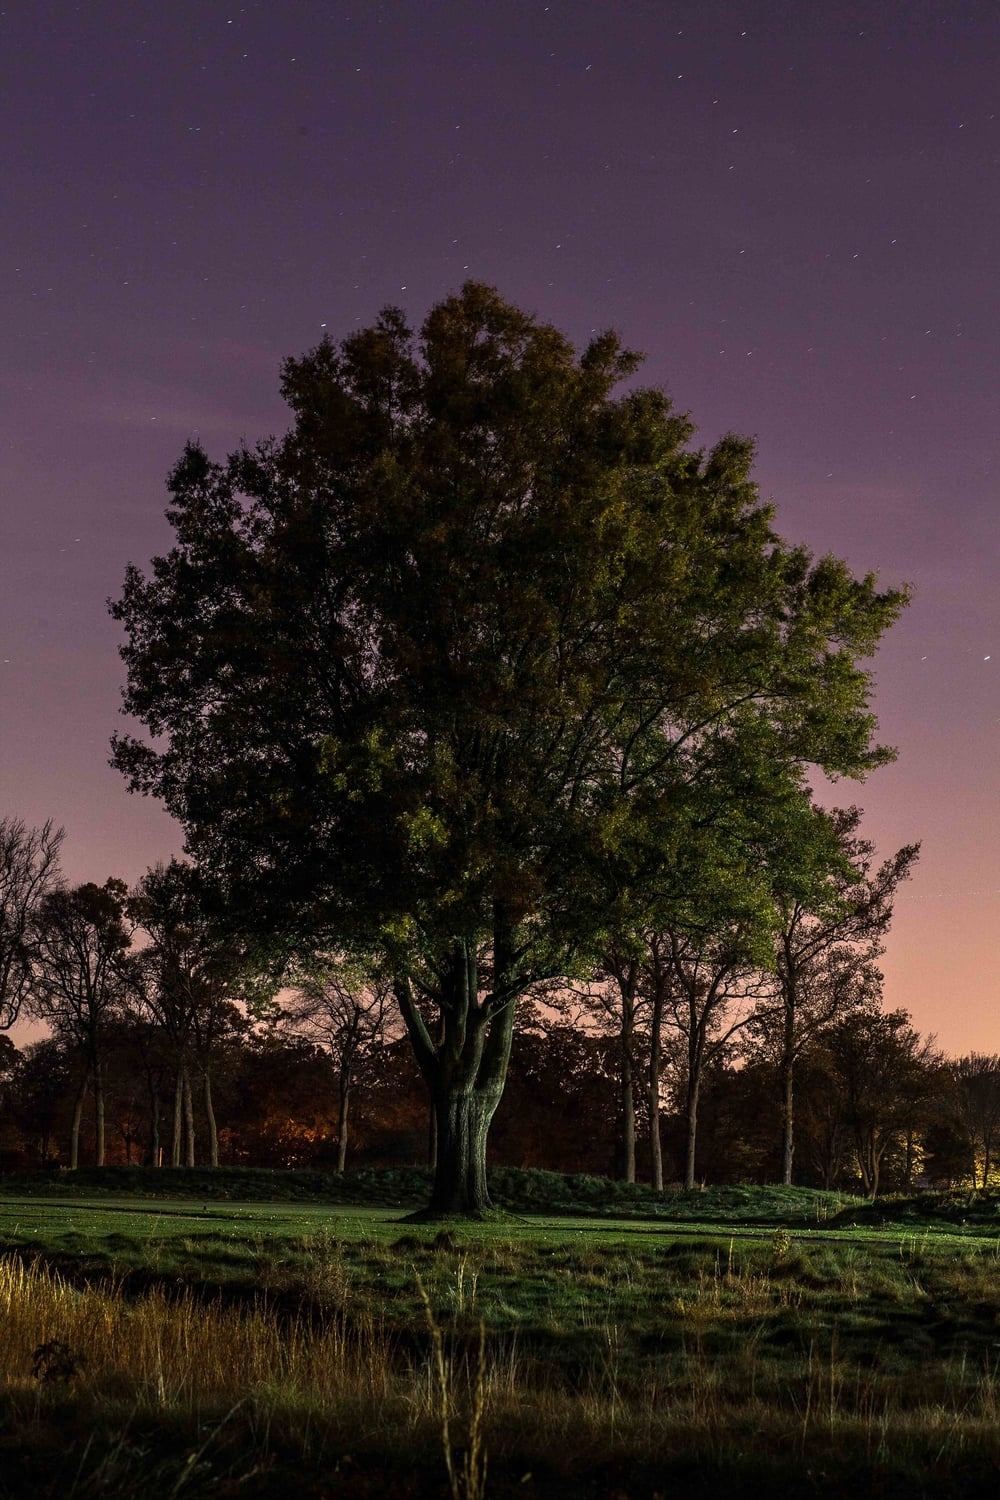 Tree at Night.jpg